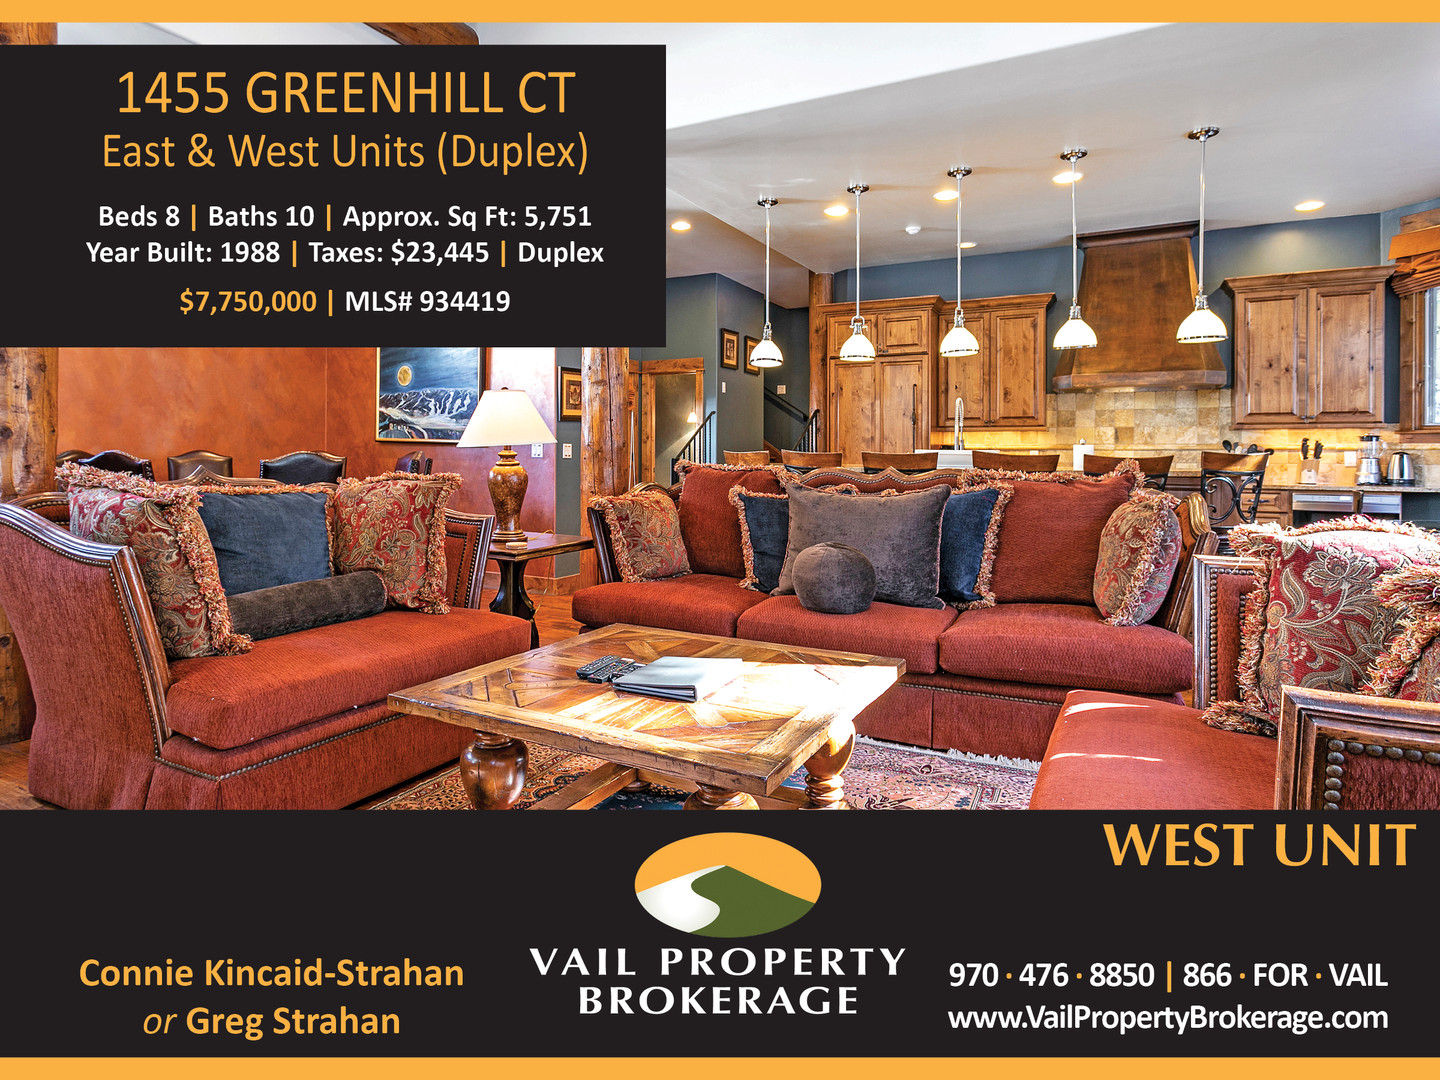 Greenhill-WEST